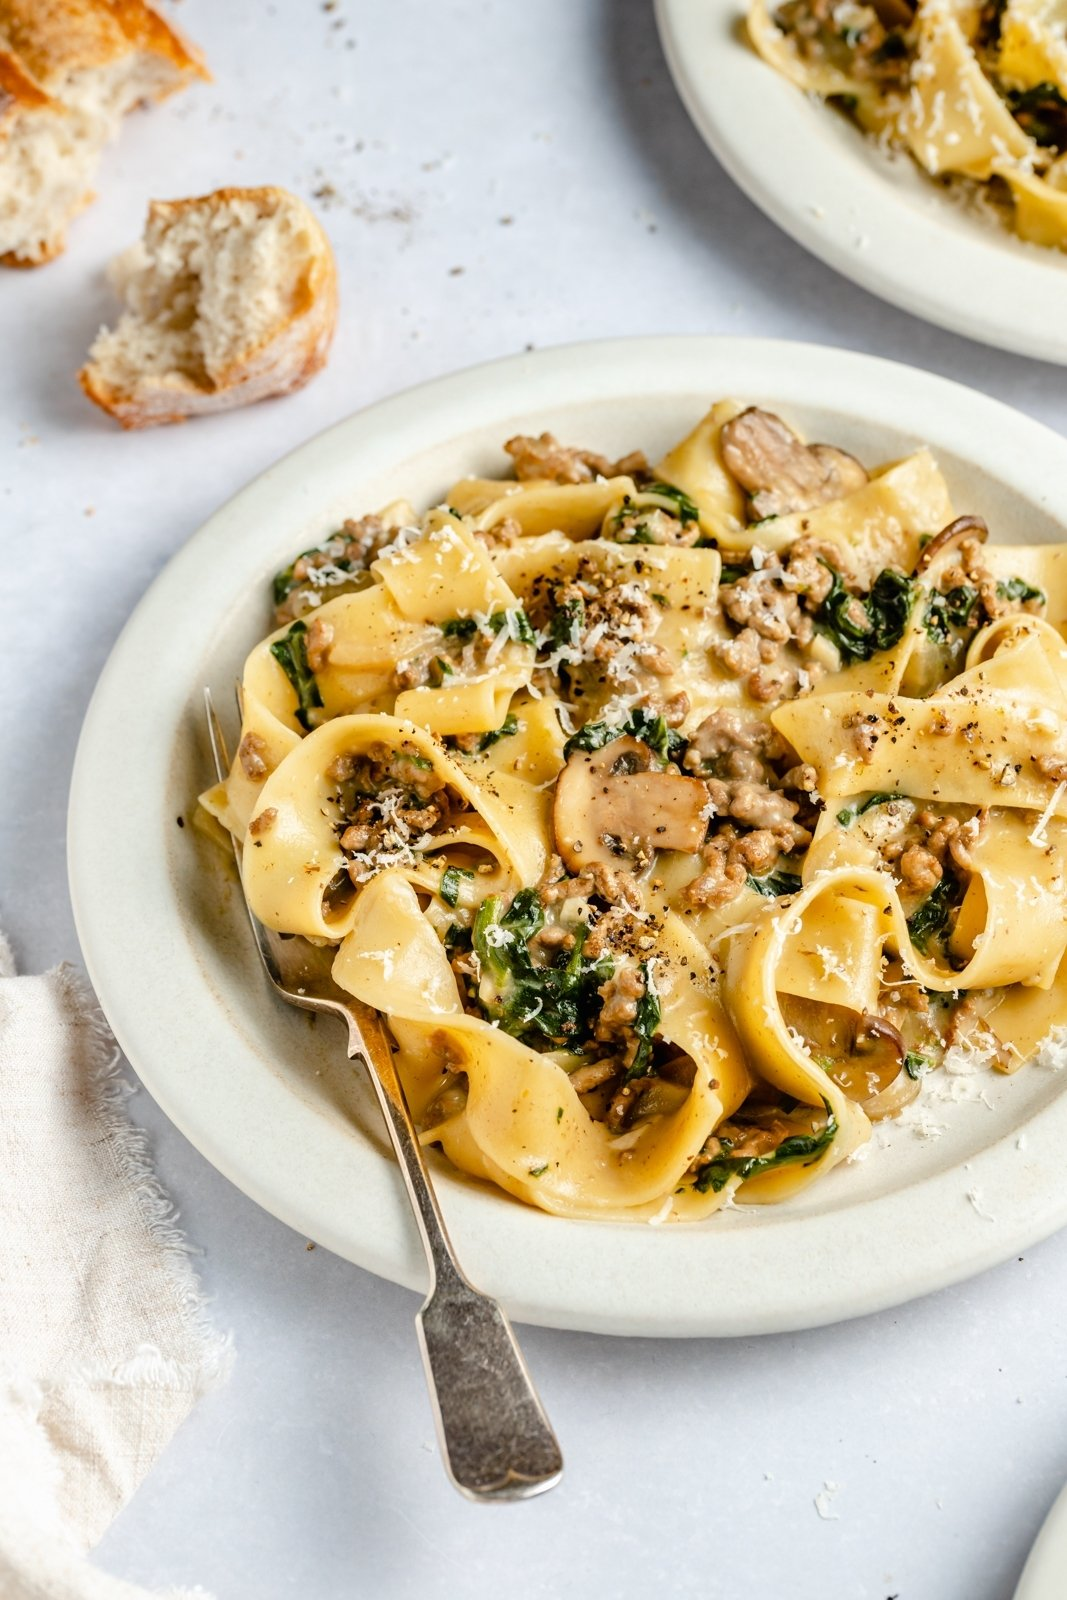 spinach beef pasta recipe on a plate with a fork